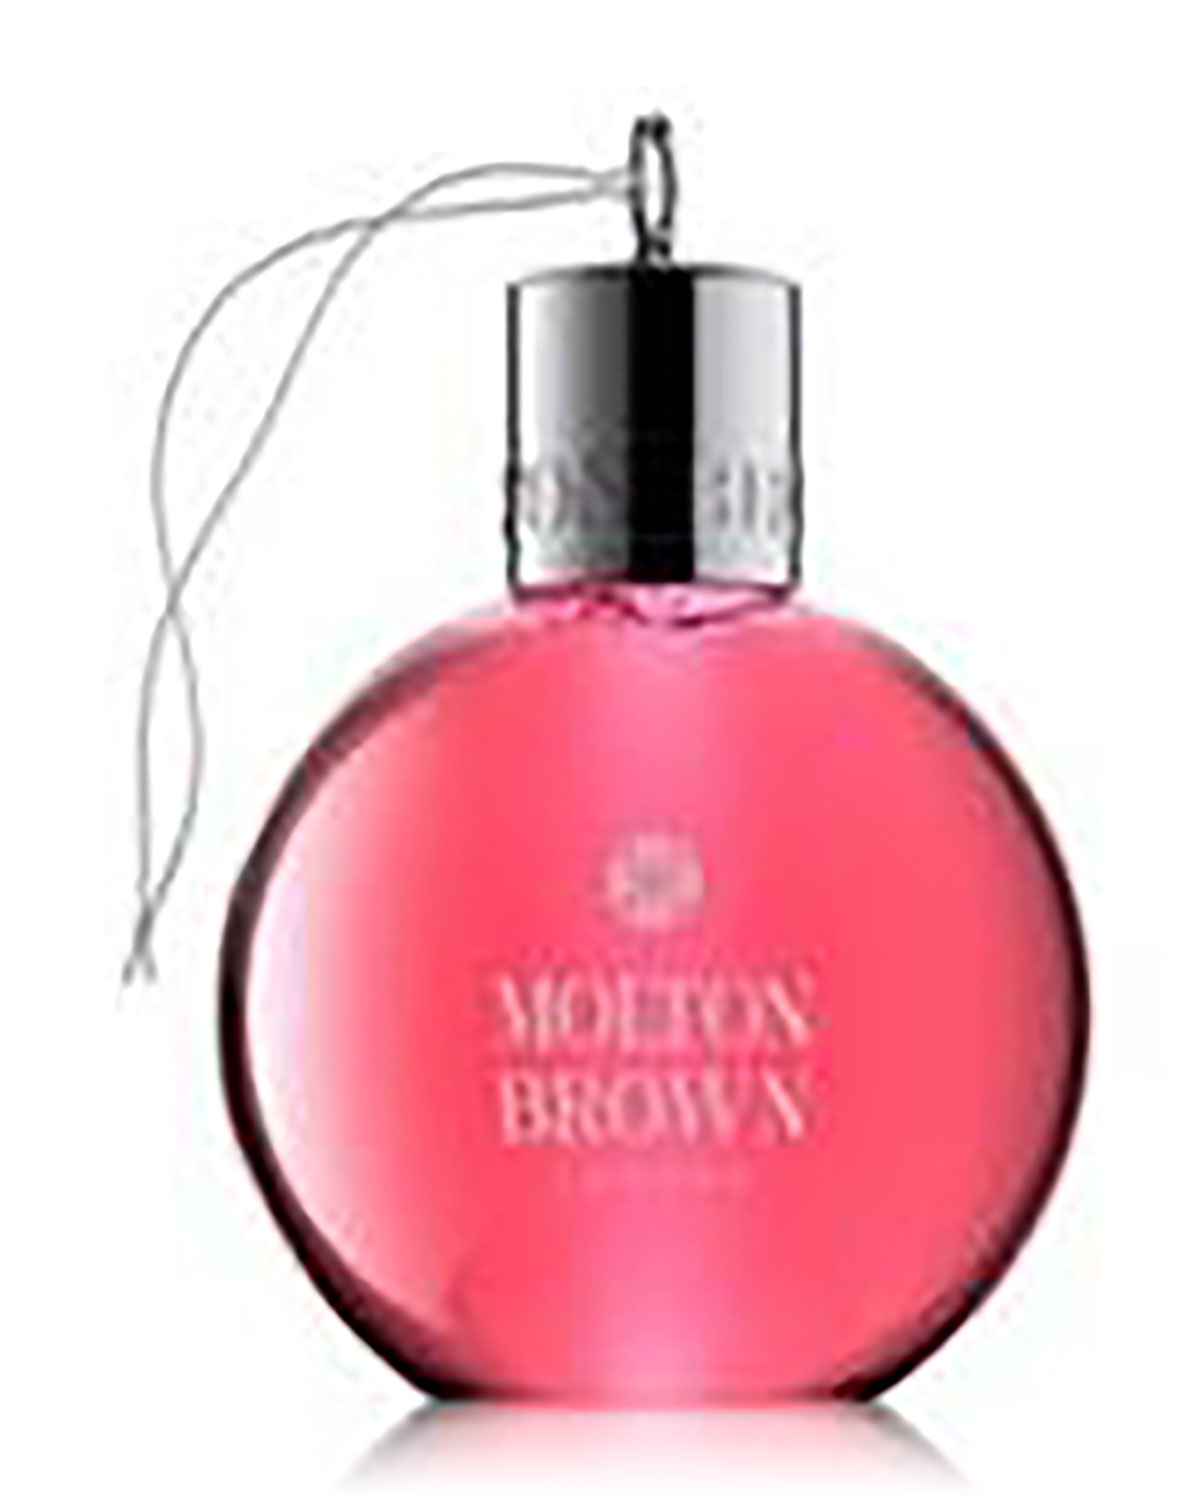 Pink Pepperpod Festive Bauble, 2.5 oz./ 75 mL